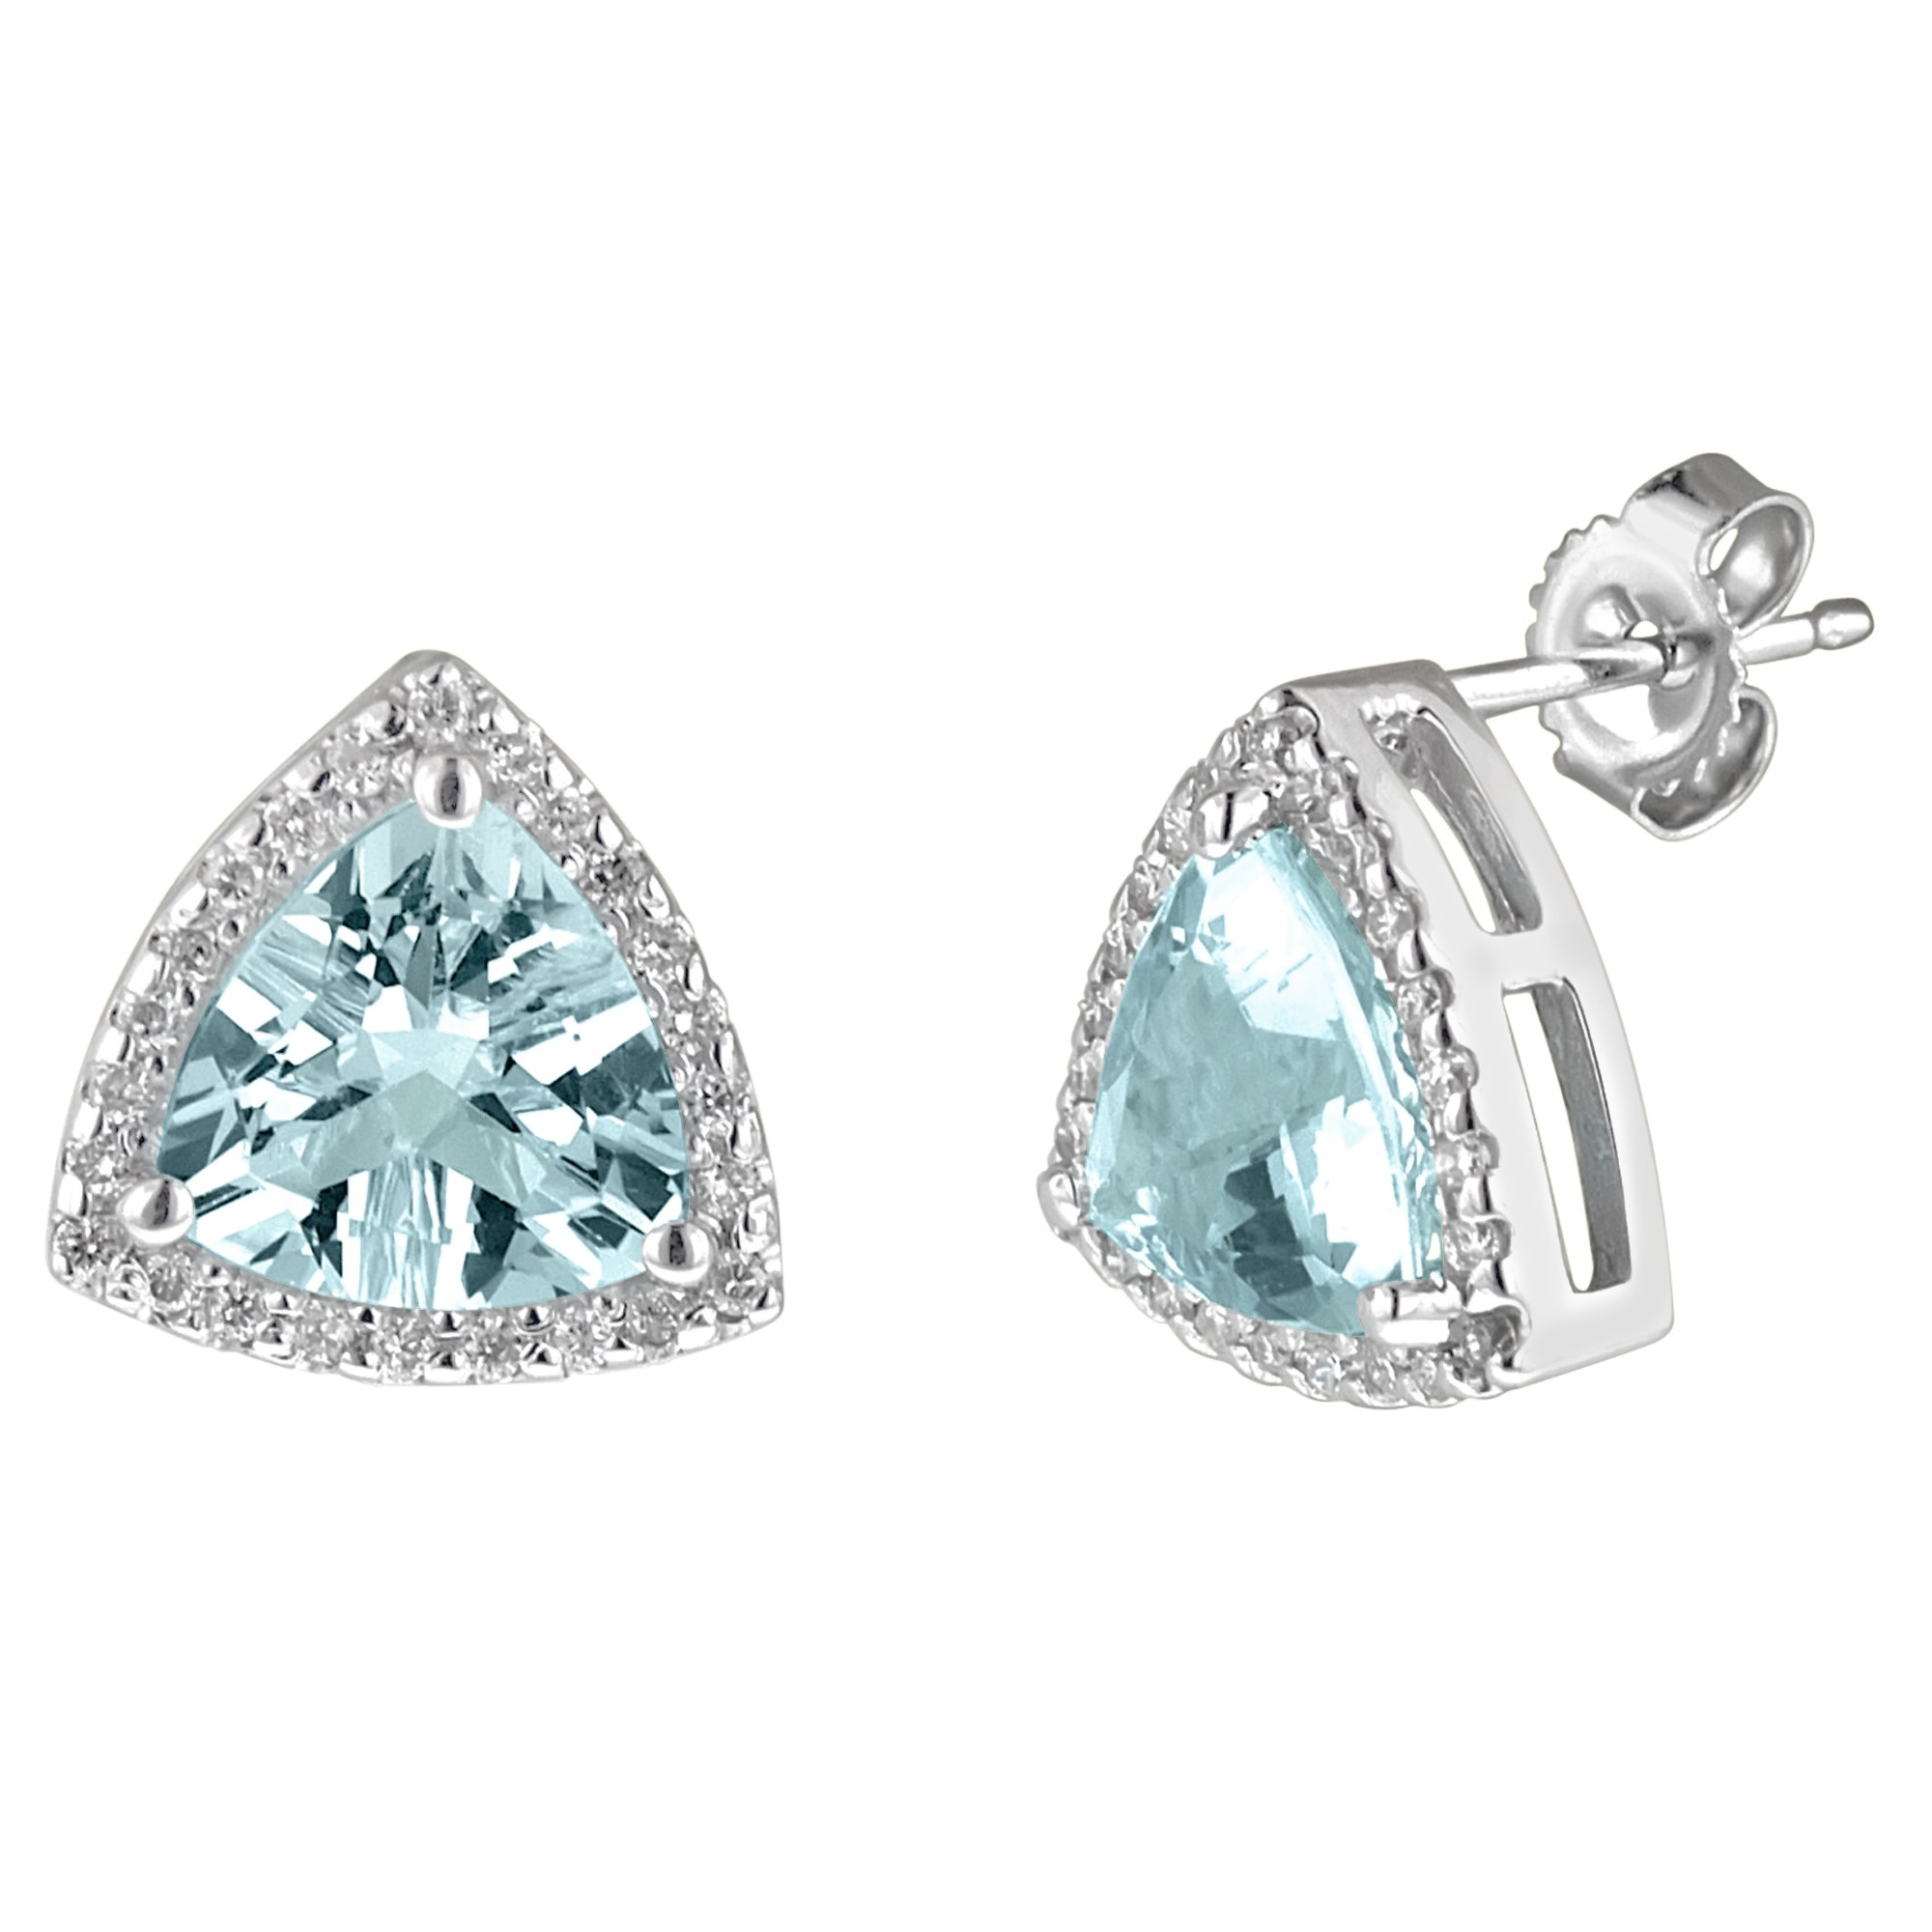 trillion cut aquamarine earrings with diamonds in 14kt white gold (1/4ct tw) HDPJICB